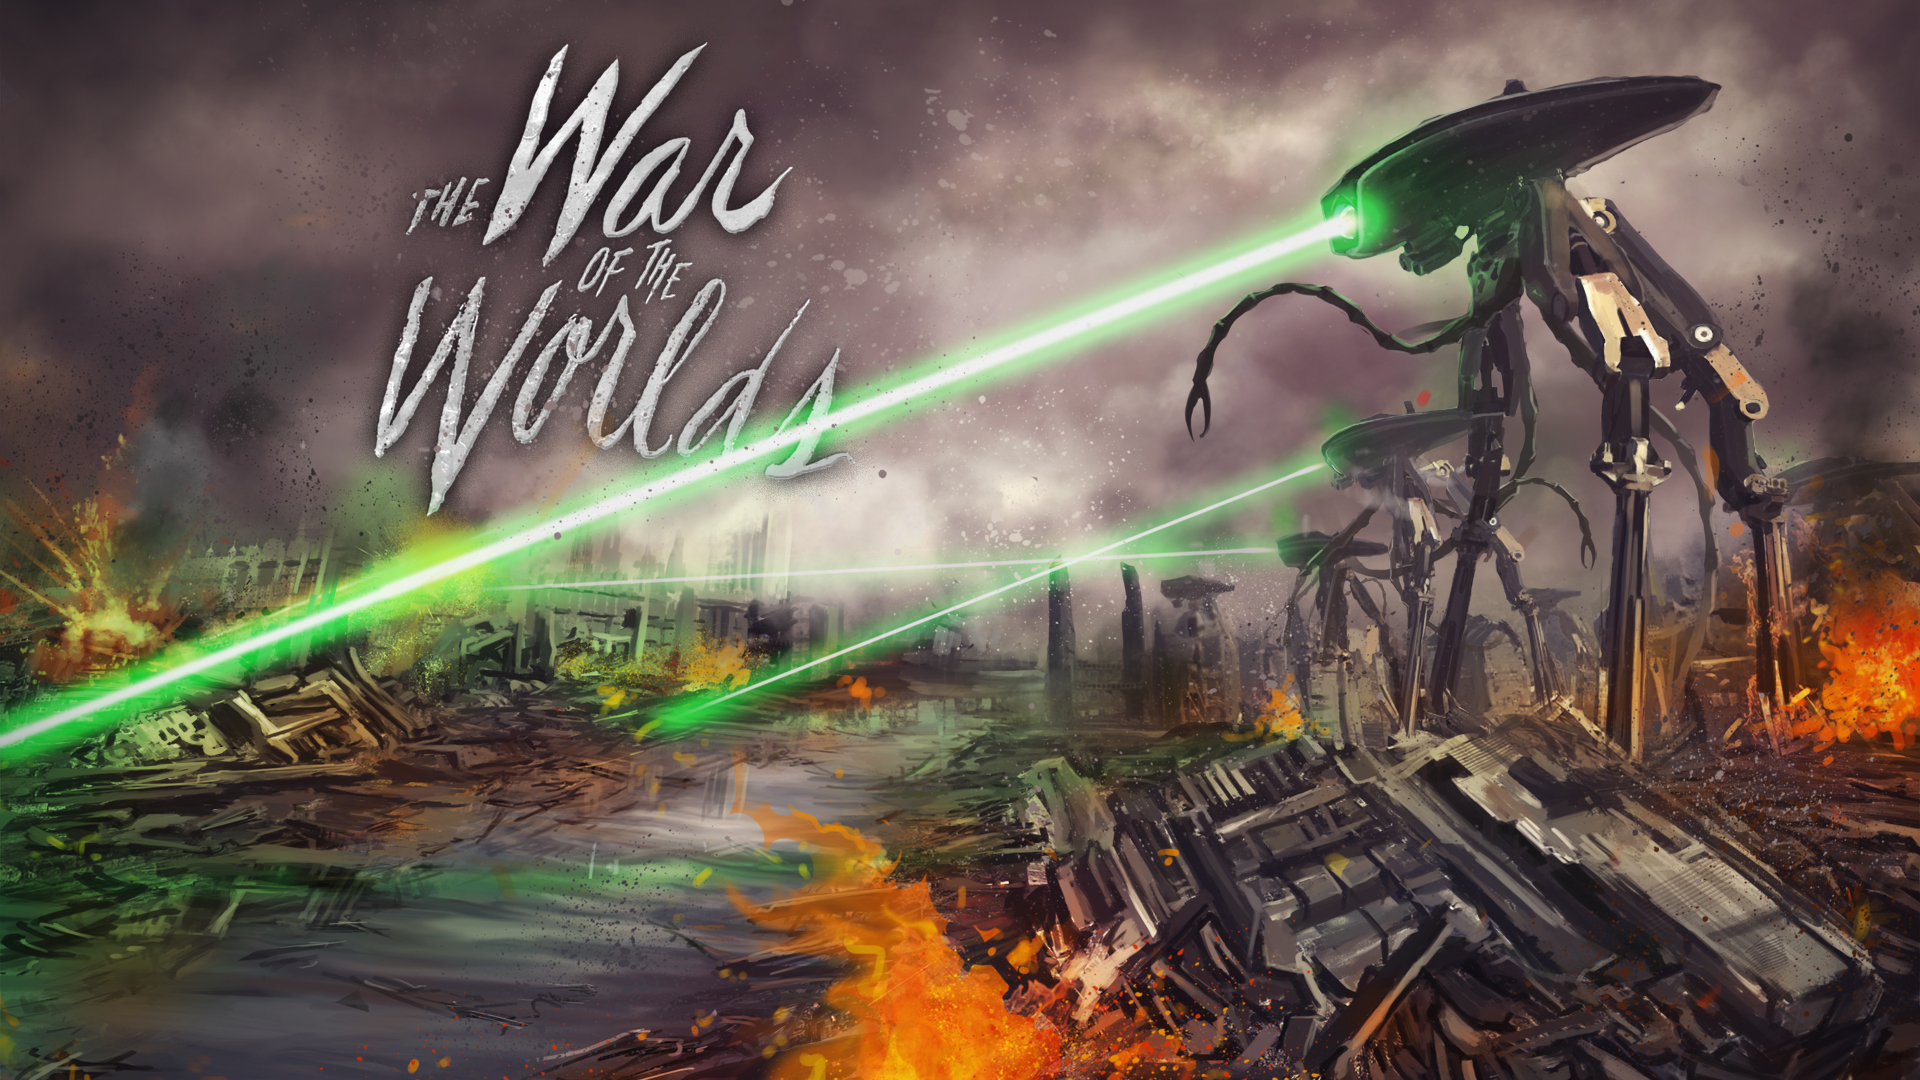 1920x1080 > War Of The Worlds Wallpapers